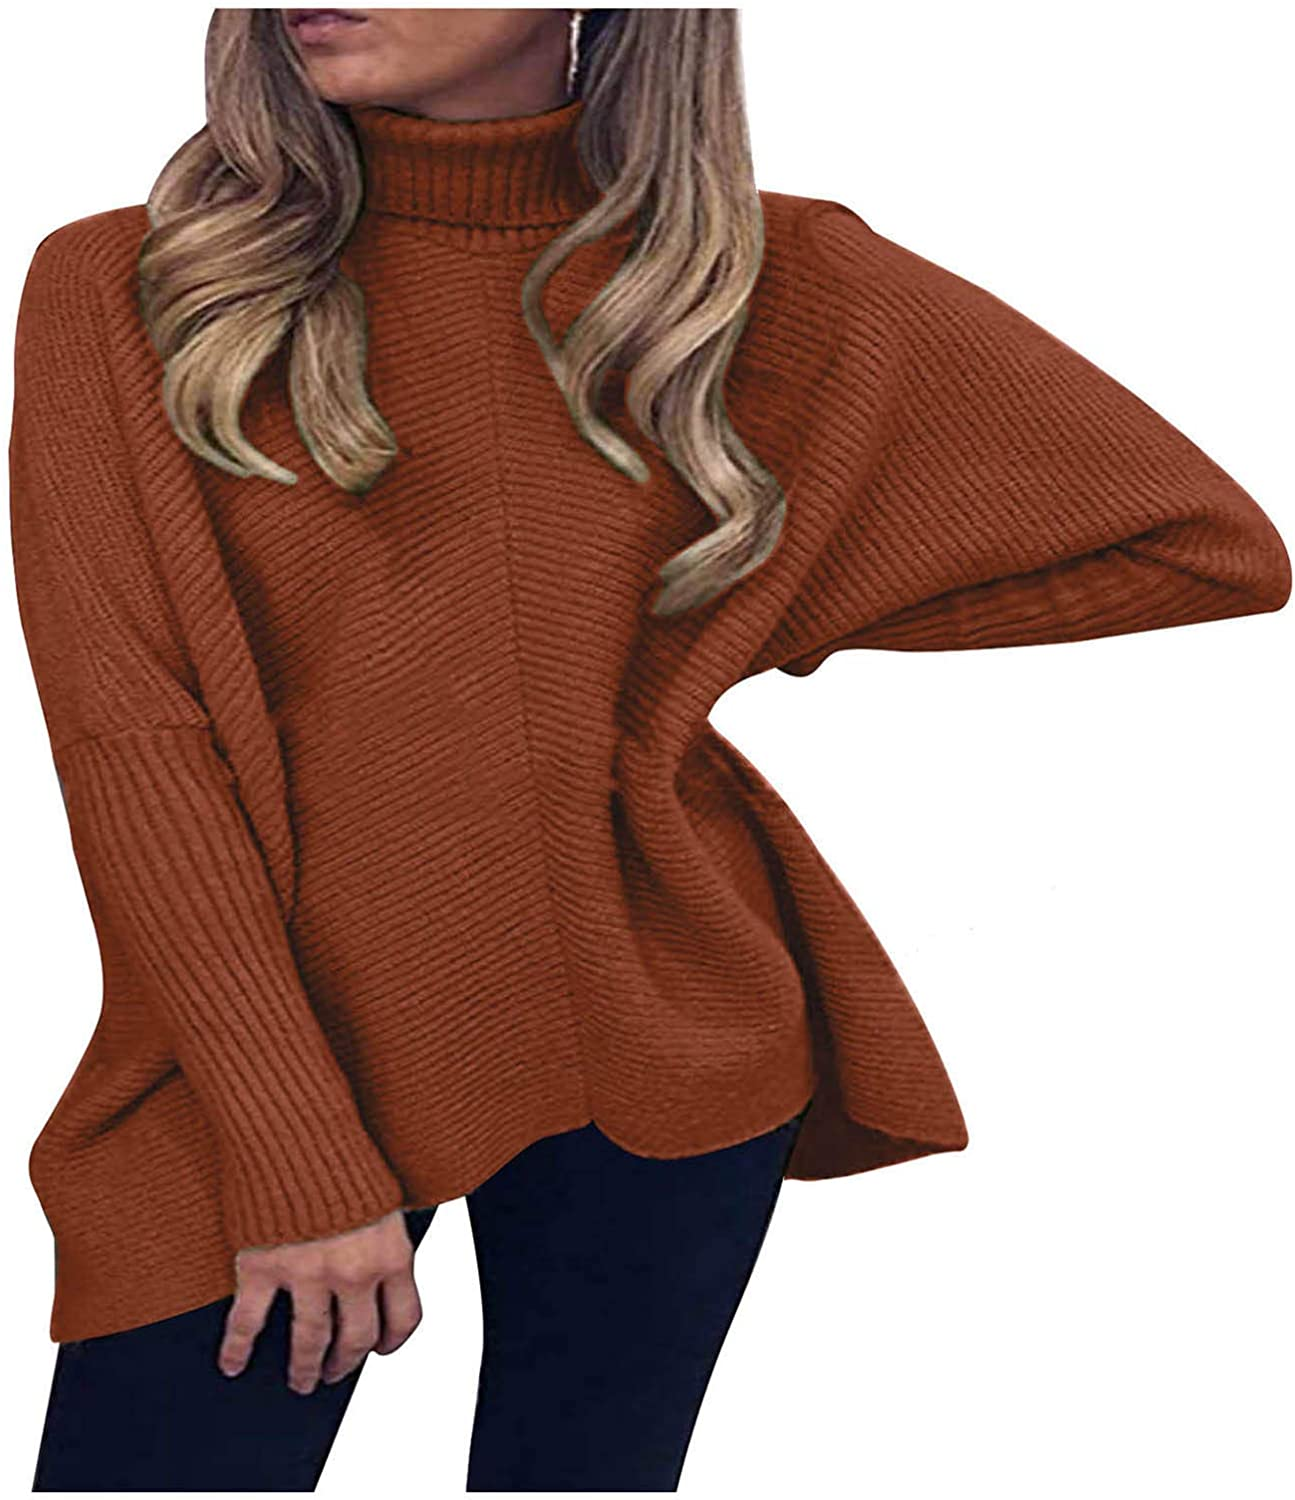 Oversized Sweaters For Women Long Sleeve Turtleneck Solid Color Pullover Sweathirts Casual Ribbed Knit Sweater